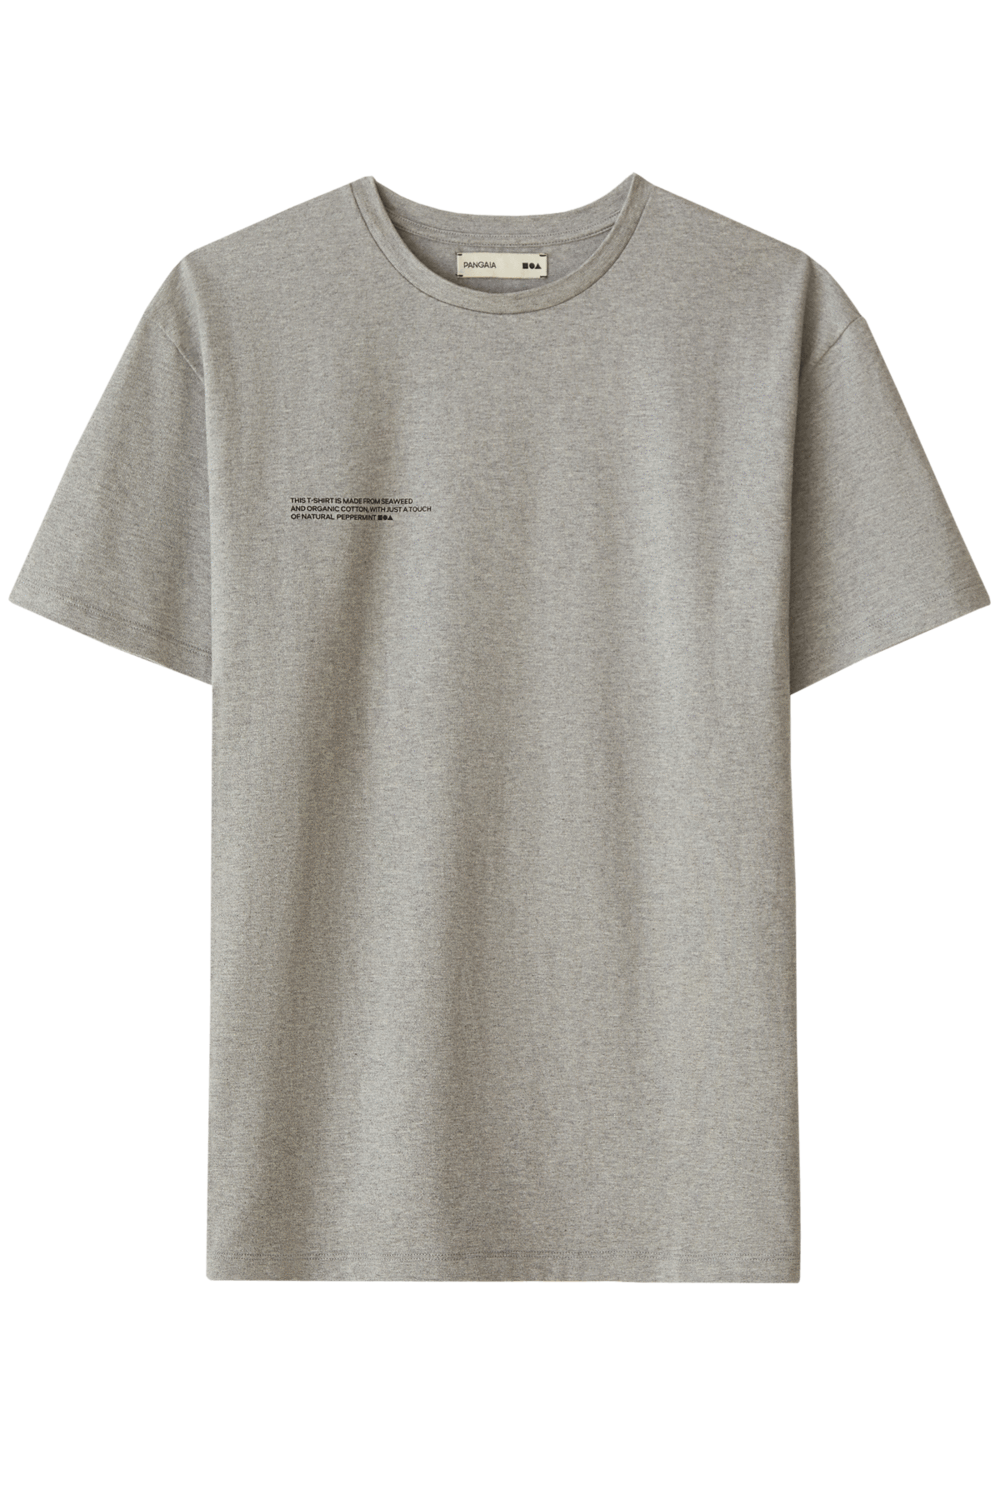 grey_front_1000x.png